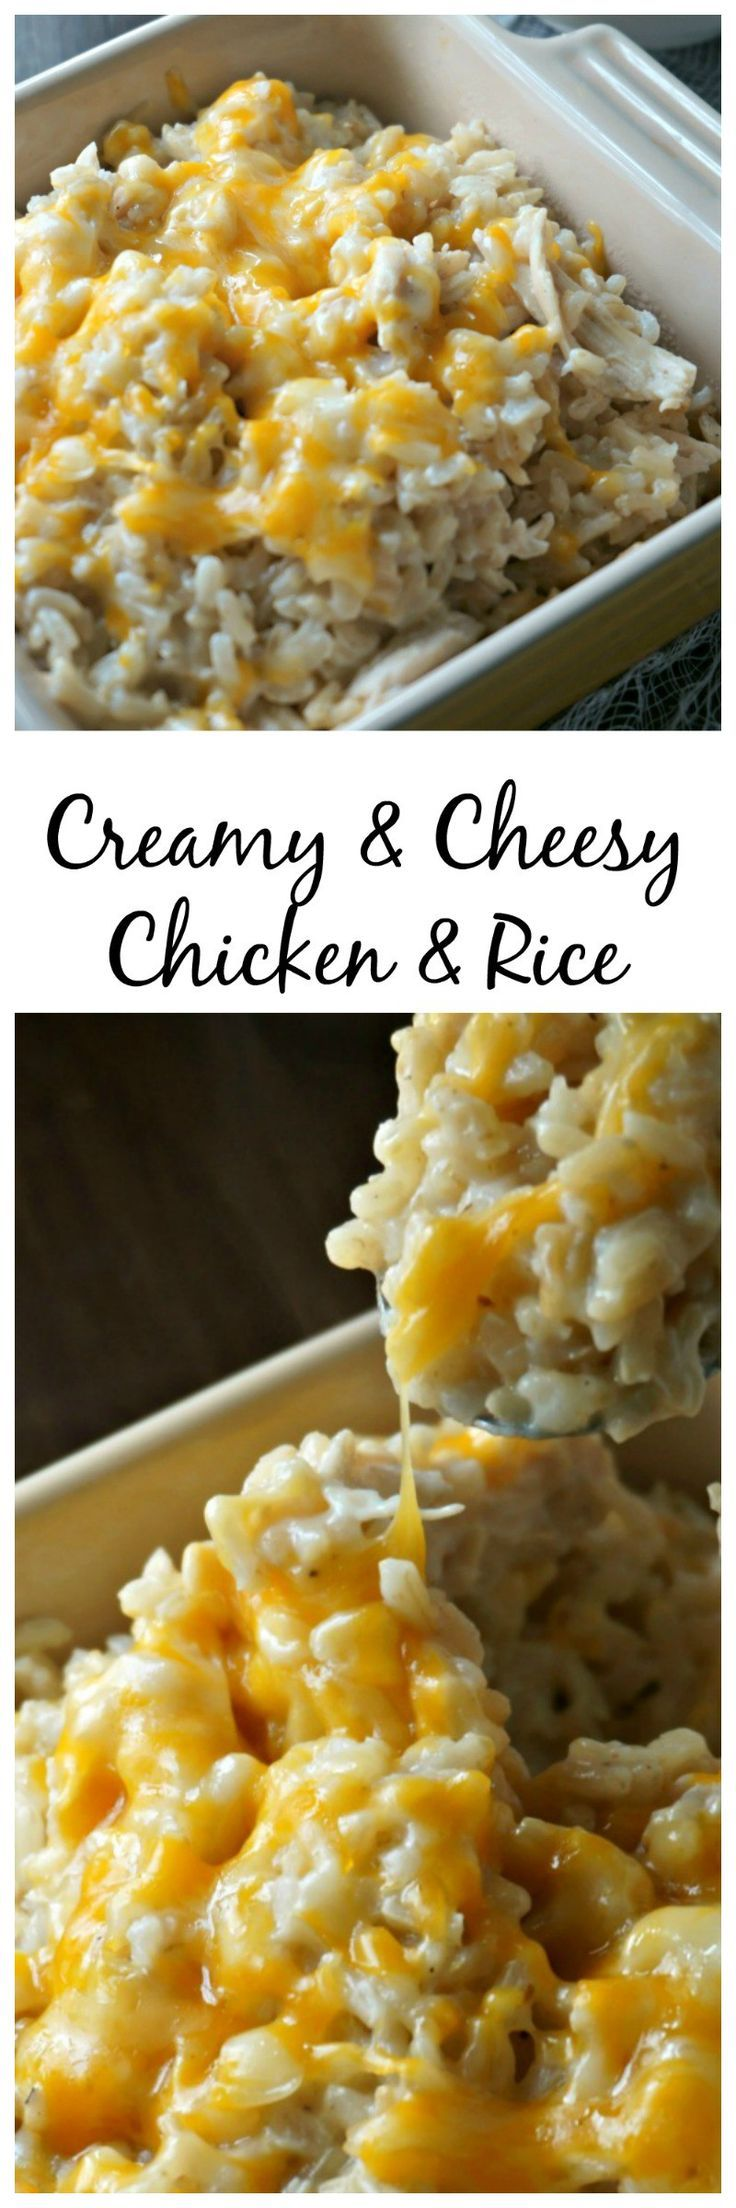 Creamy and Cheesy Chicken and Rice: brown rice, cooked chicken, and lots of cheese all swimming in a decadent, yet healthy cream sauce. This is a dish that everyone loves. (Bake Shrimp Rice)